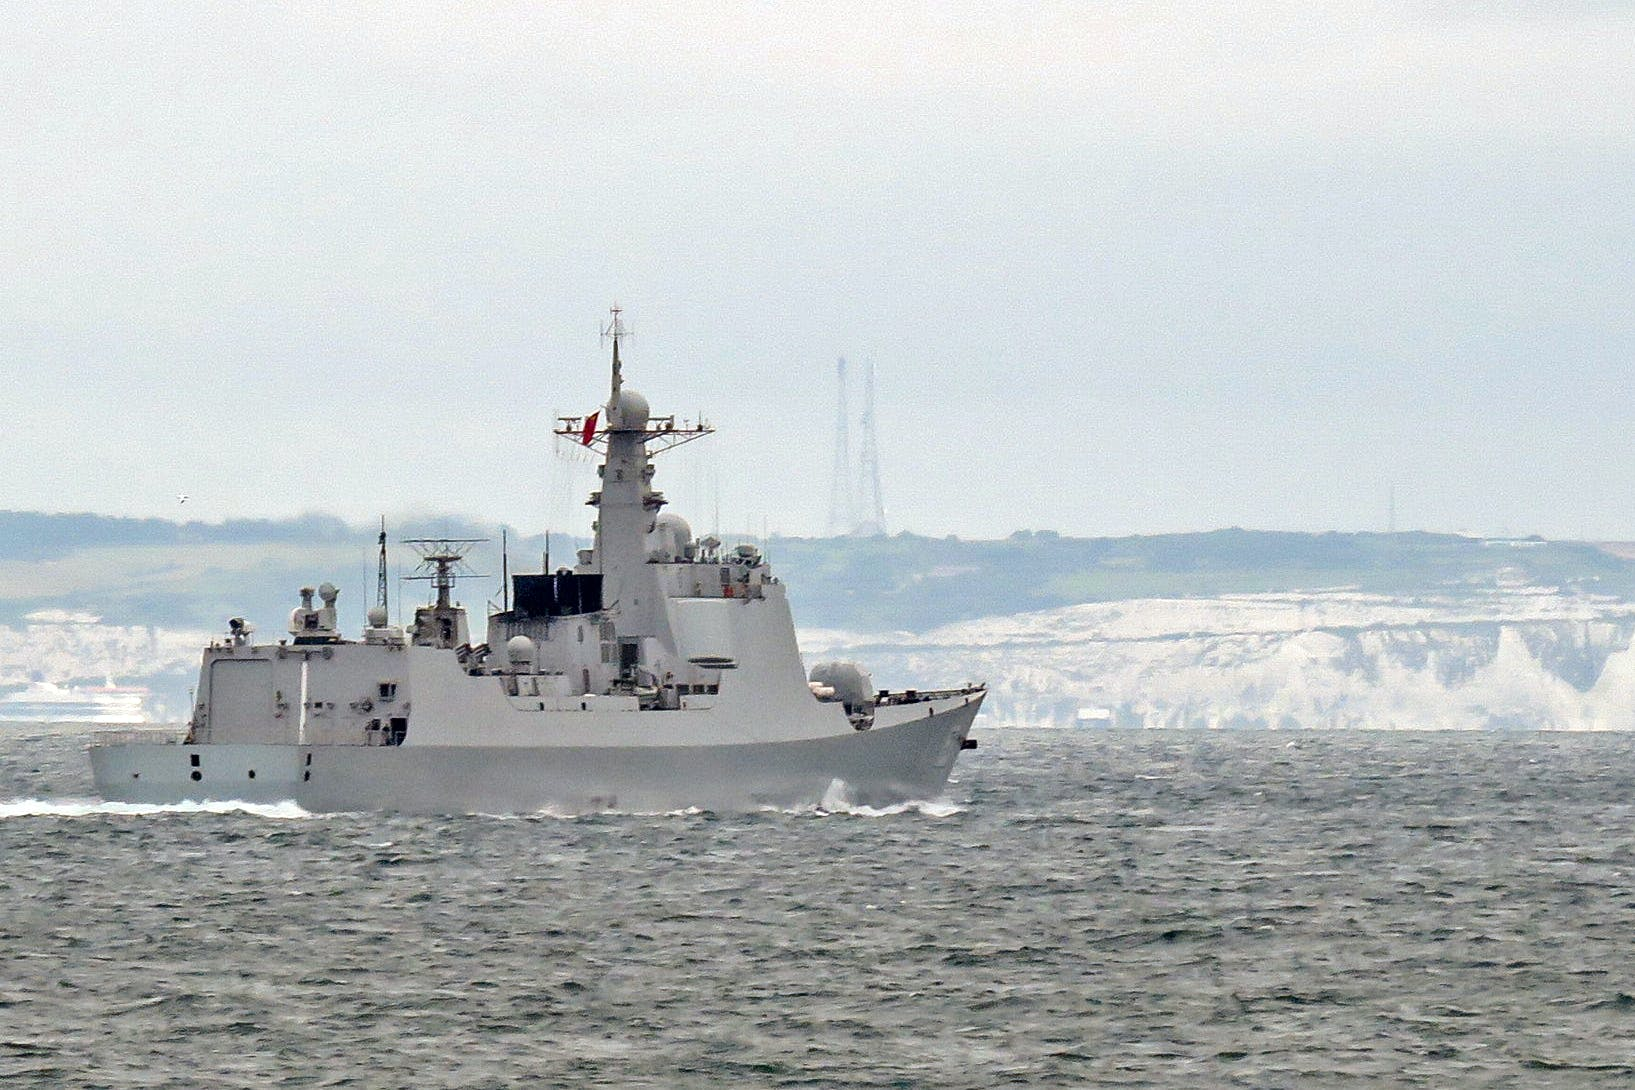 British Frigate shadows Chinese destroyer in English Channel